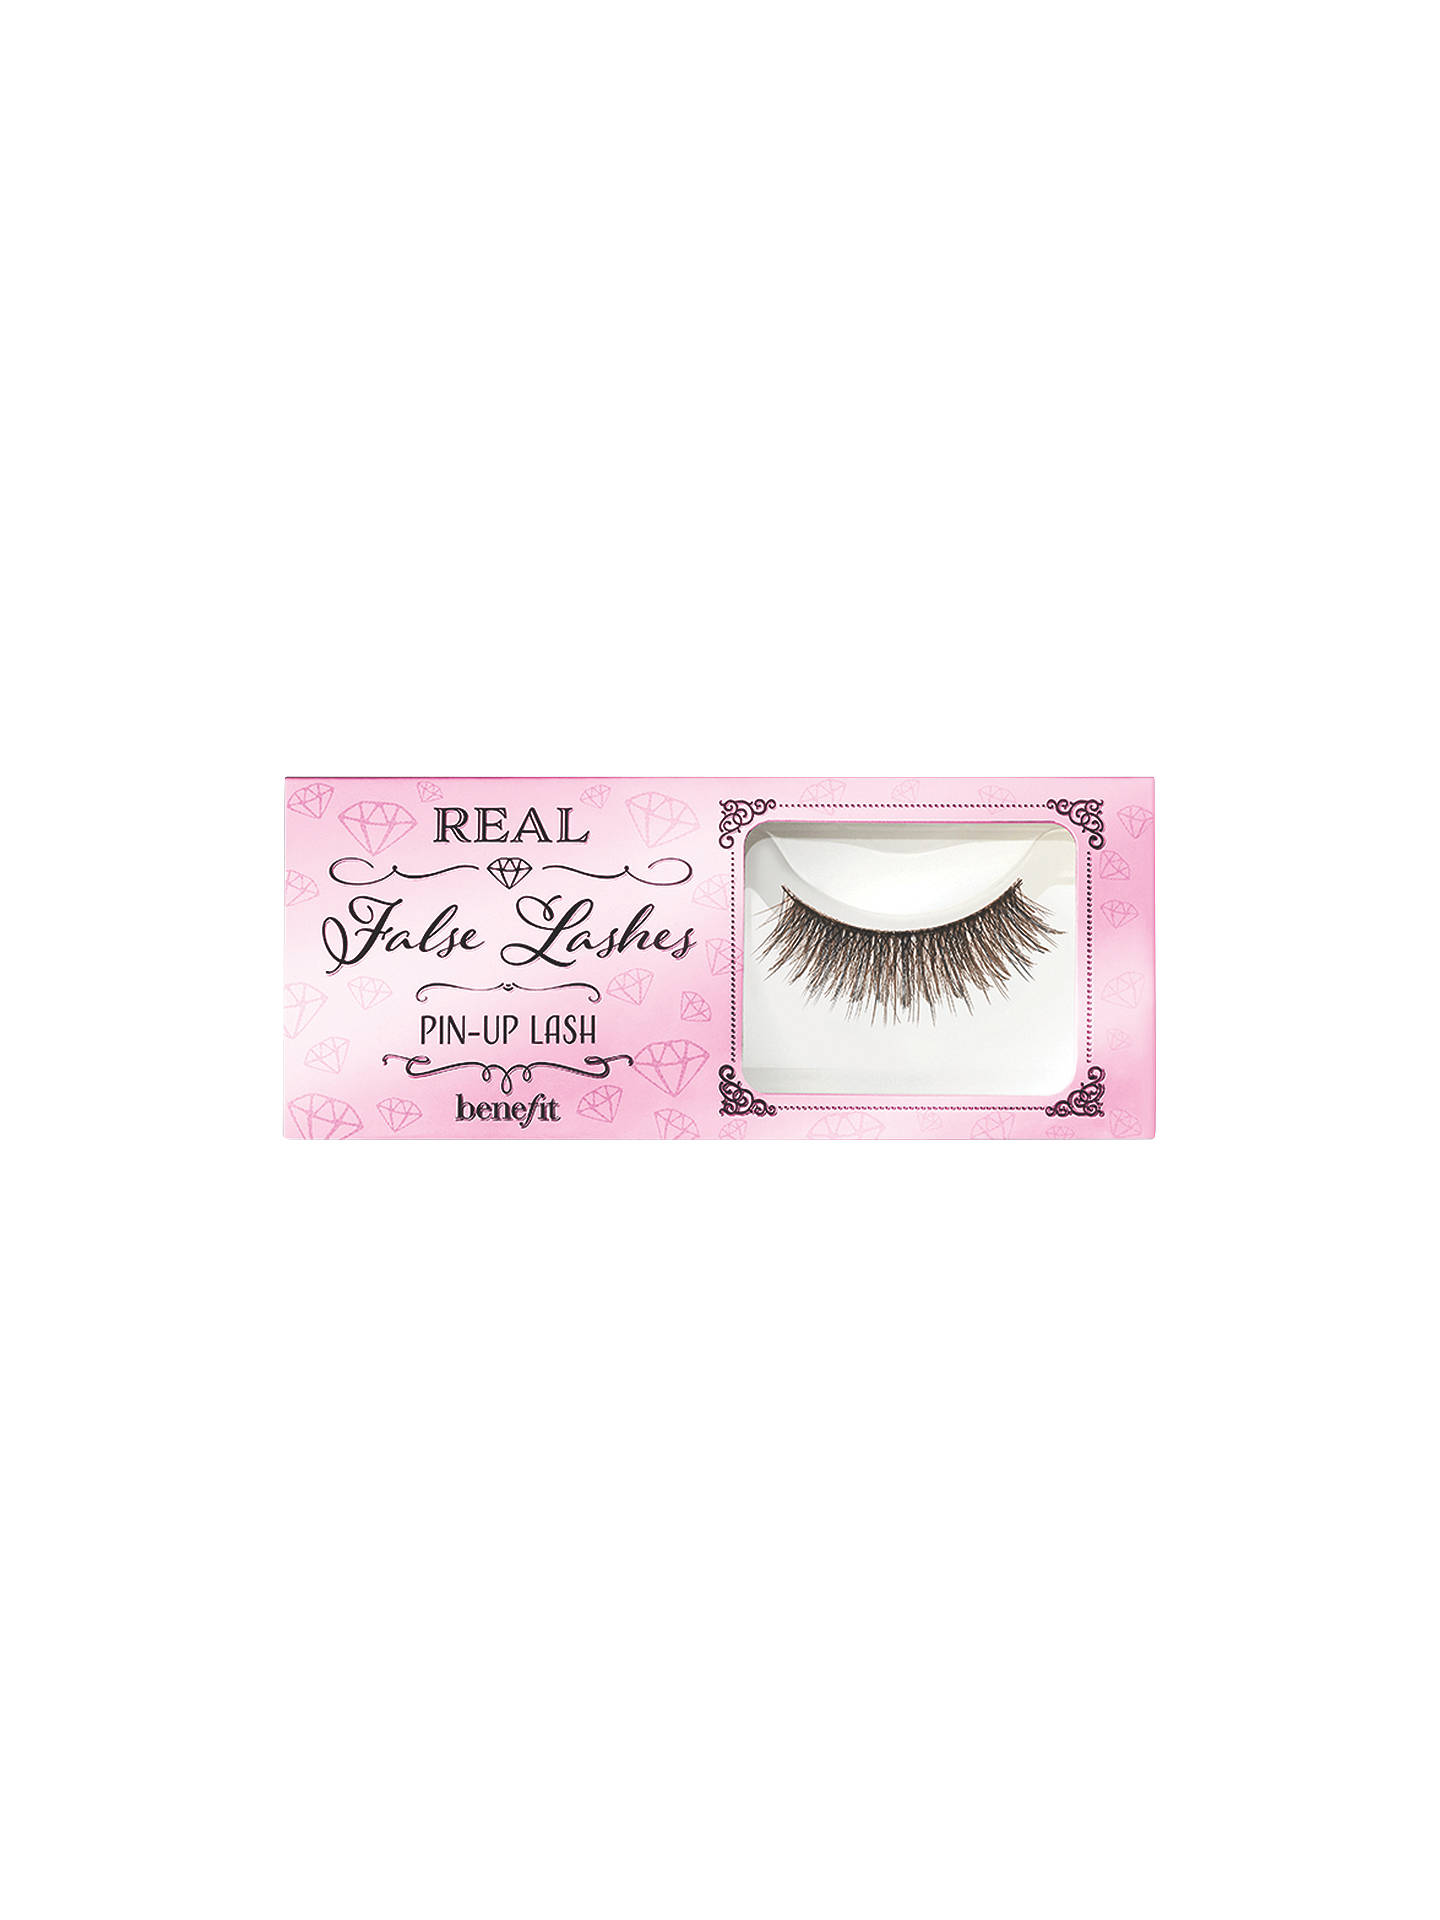 BuyBenefit REAL False Lashes, Pin-Up Lash Online at johnlewis.com